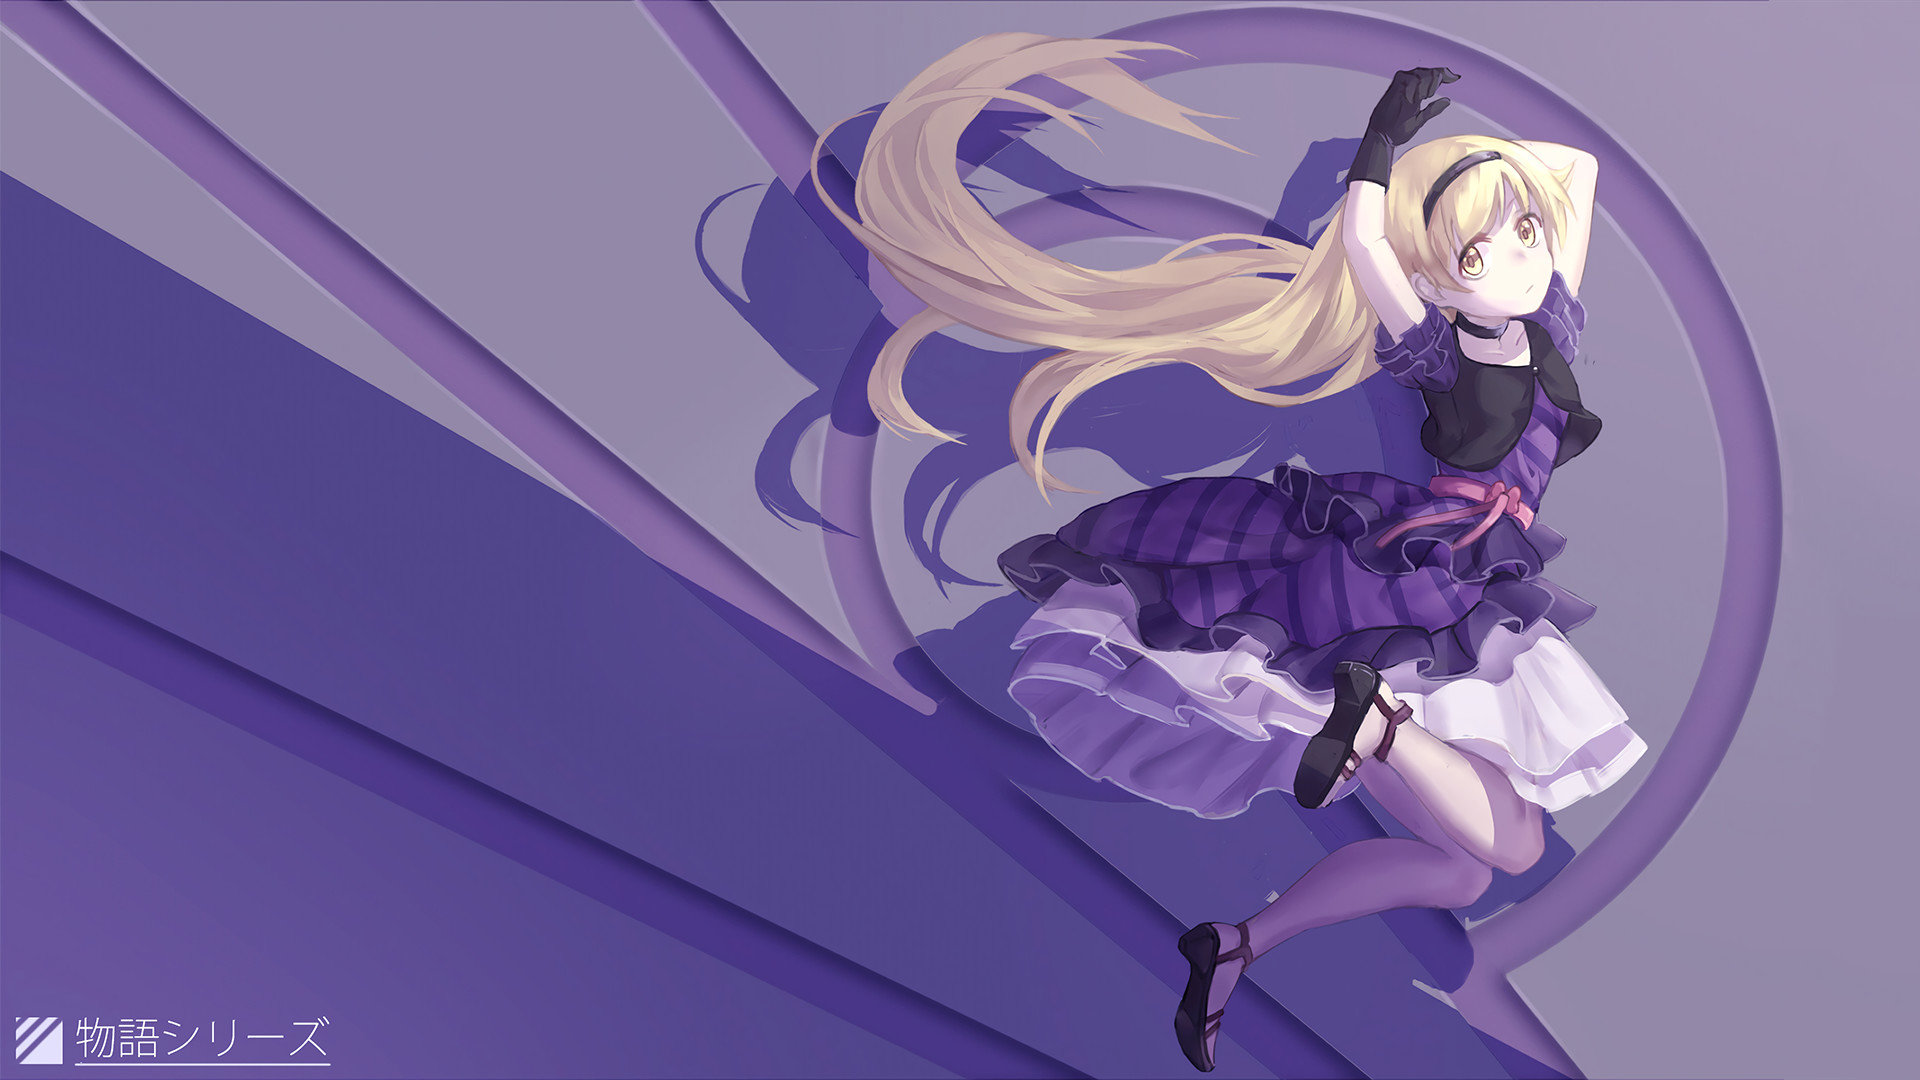 Download hd 1920x1080 Monogatari (Series) desktop wallpaper ID:108577 for free